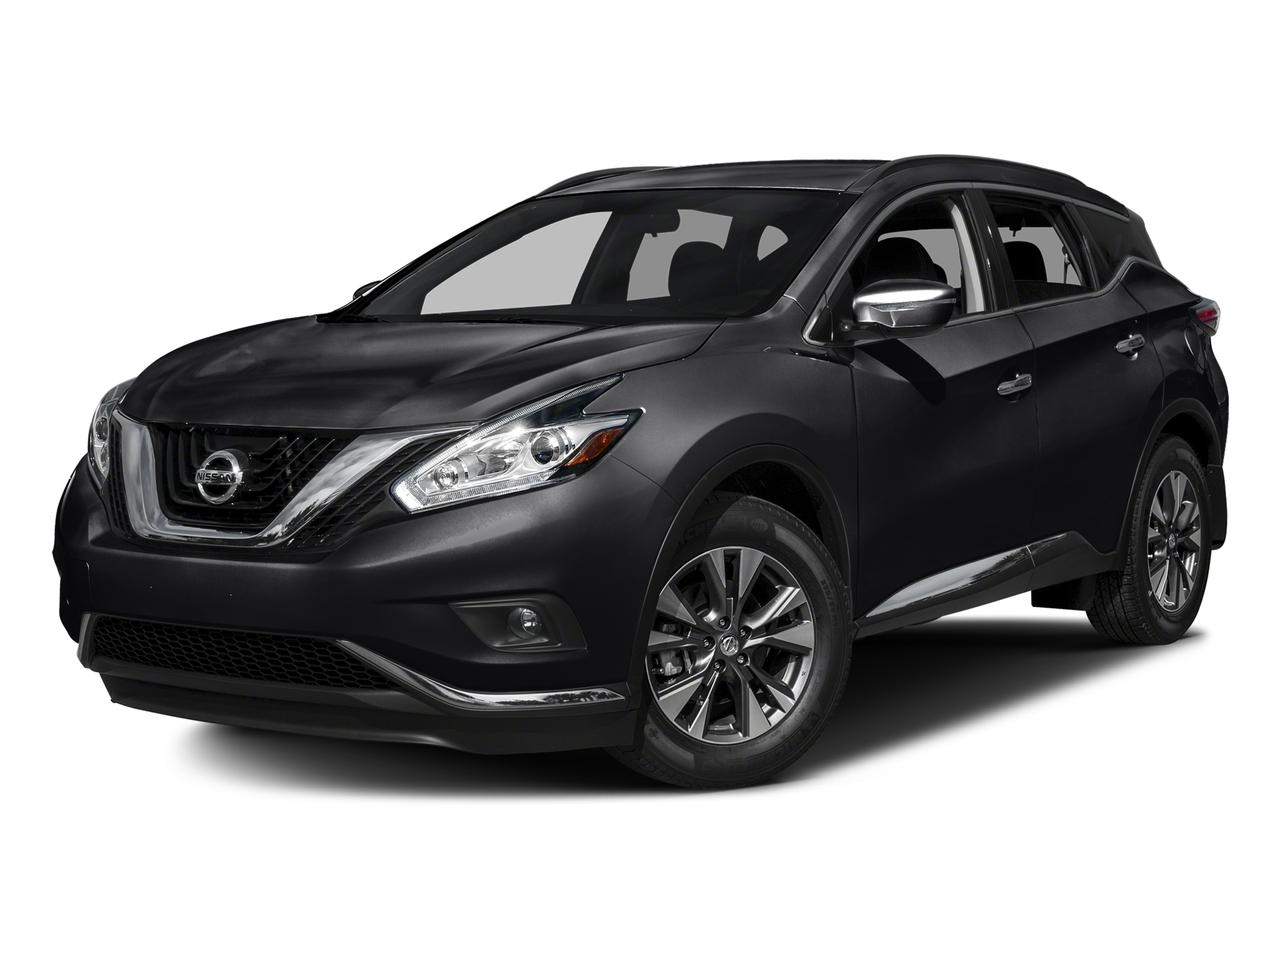 2017 Nissan Murano Vehicle Photo in Quakertown, PA 18951